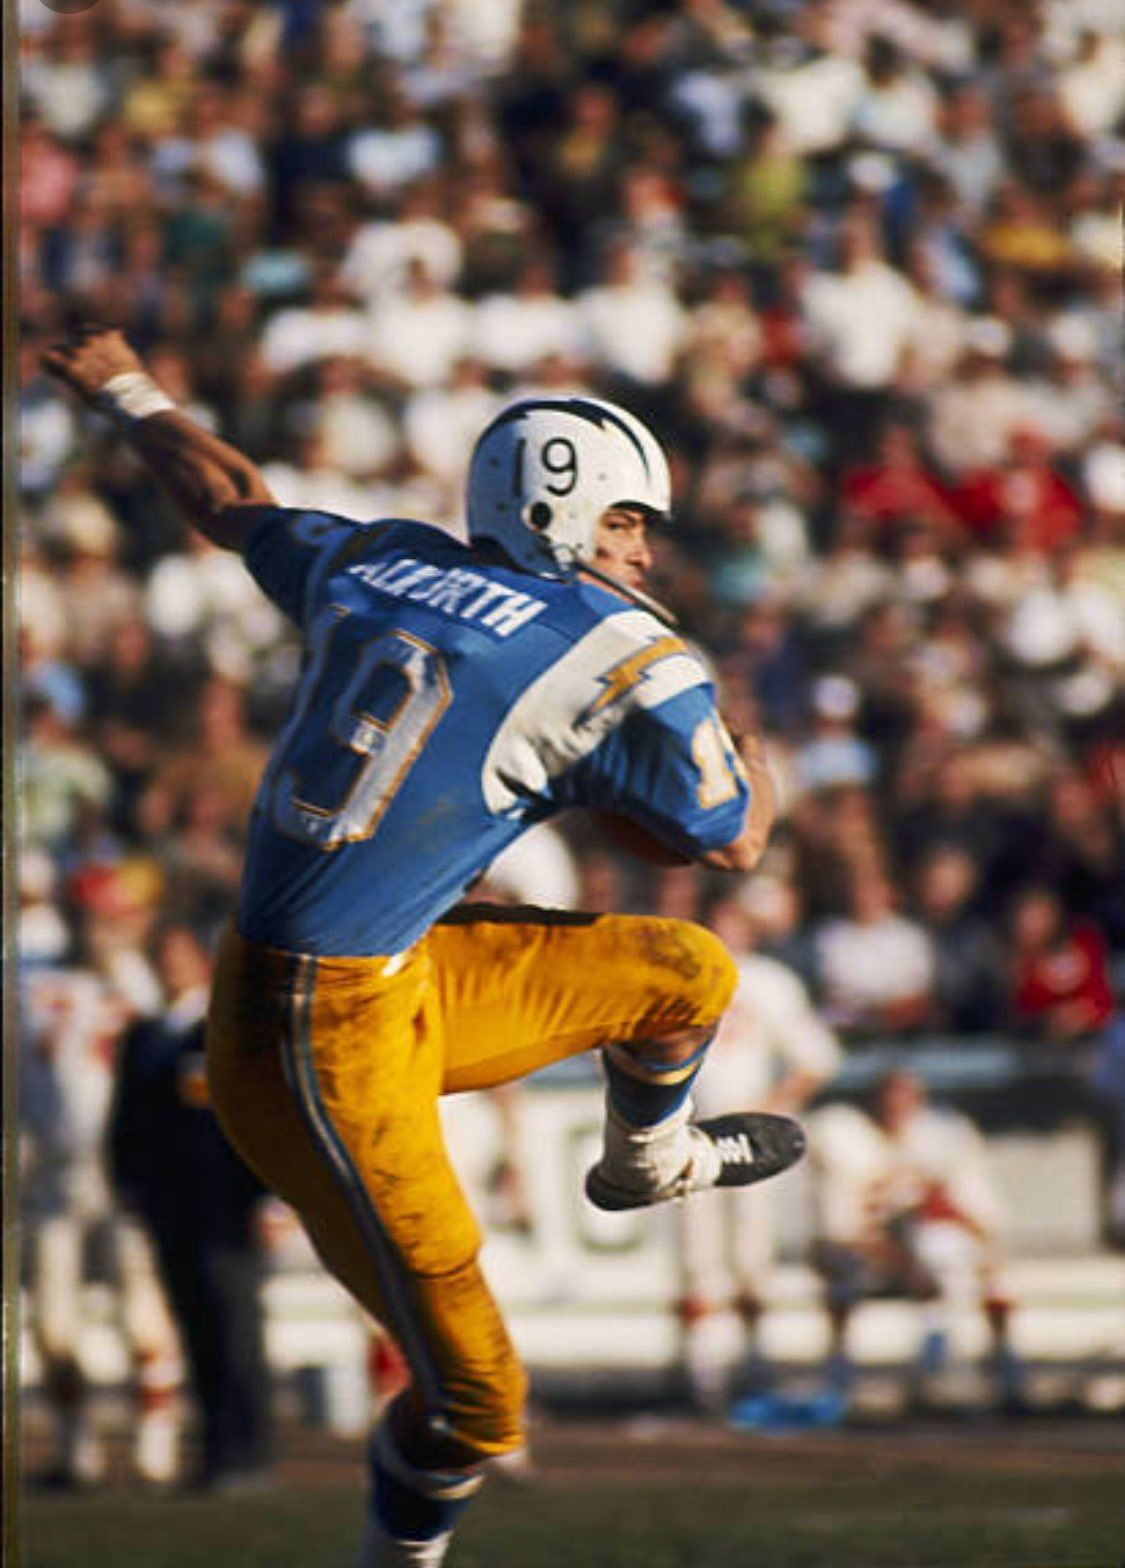 ALWORTH Chargers football, American football league